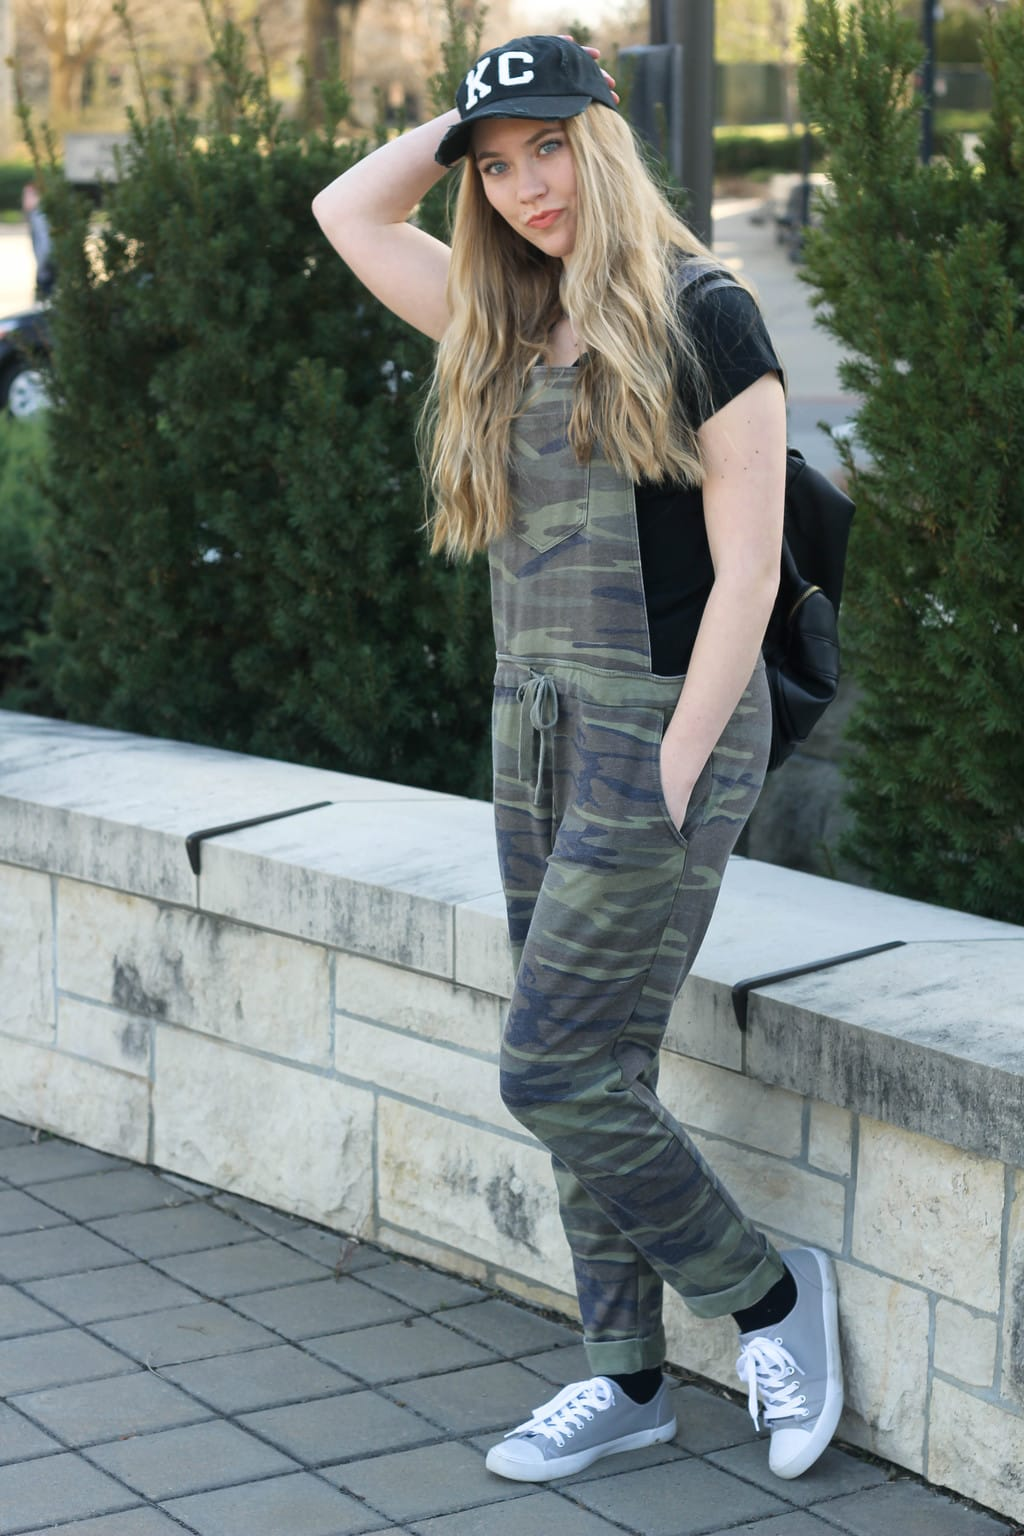 Monica, a student at Kansas State University, sports a relaxed knit camoflauge pair of overalls with a simple black tee, a black and white KC ballcap, a black backpack, and grey sneakers.